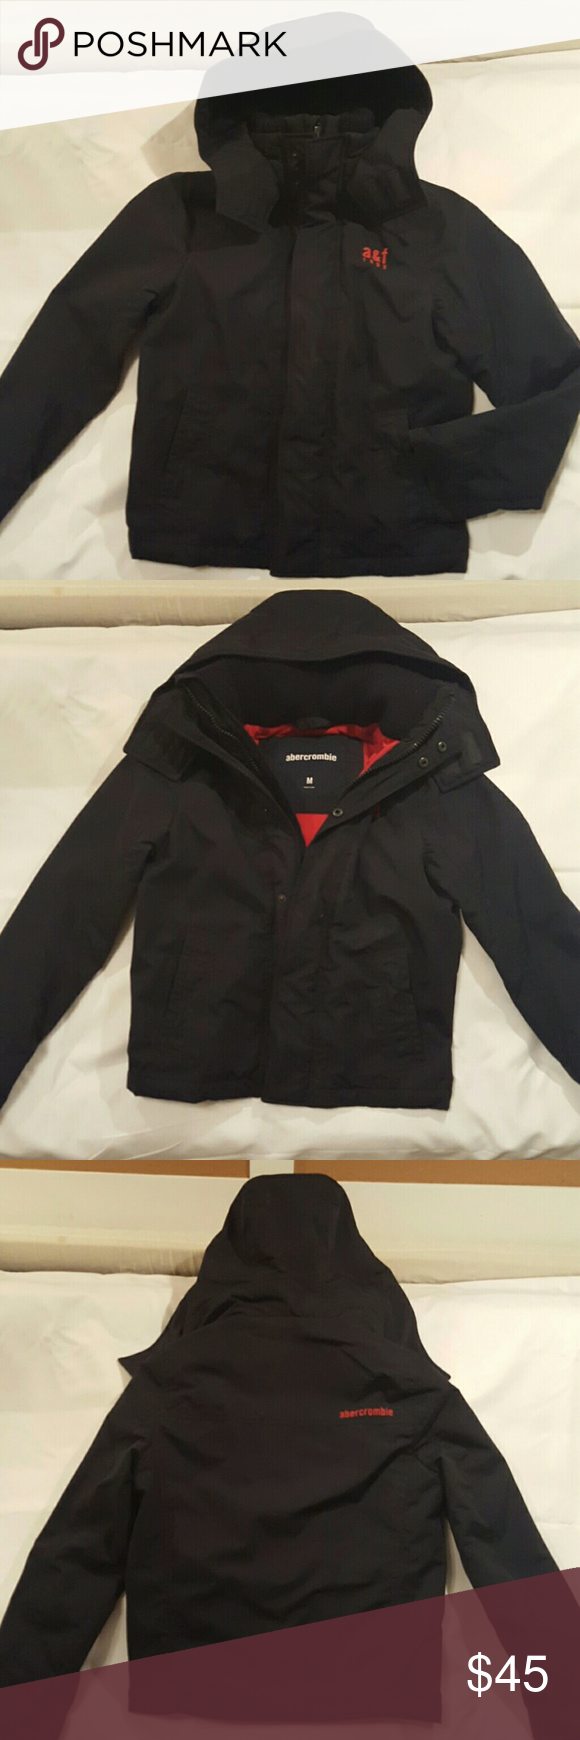 494f688d302e Boys abercrombie all-weather winter coat Navy blue with red fleece ...